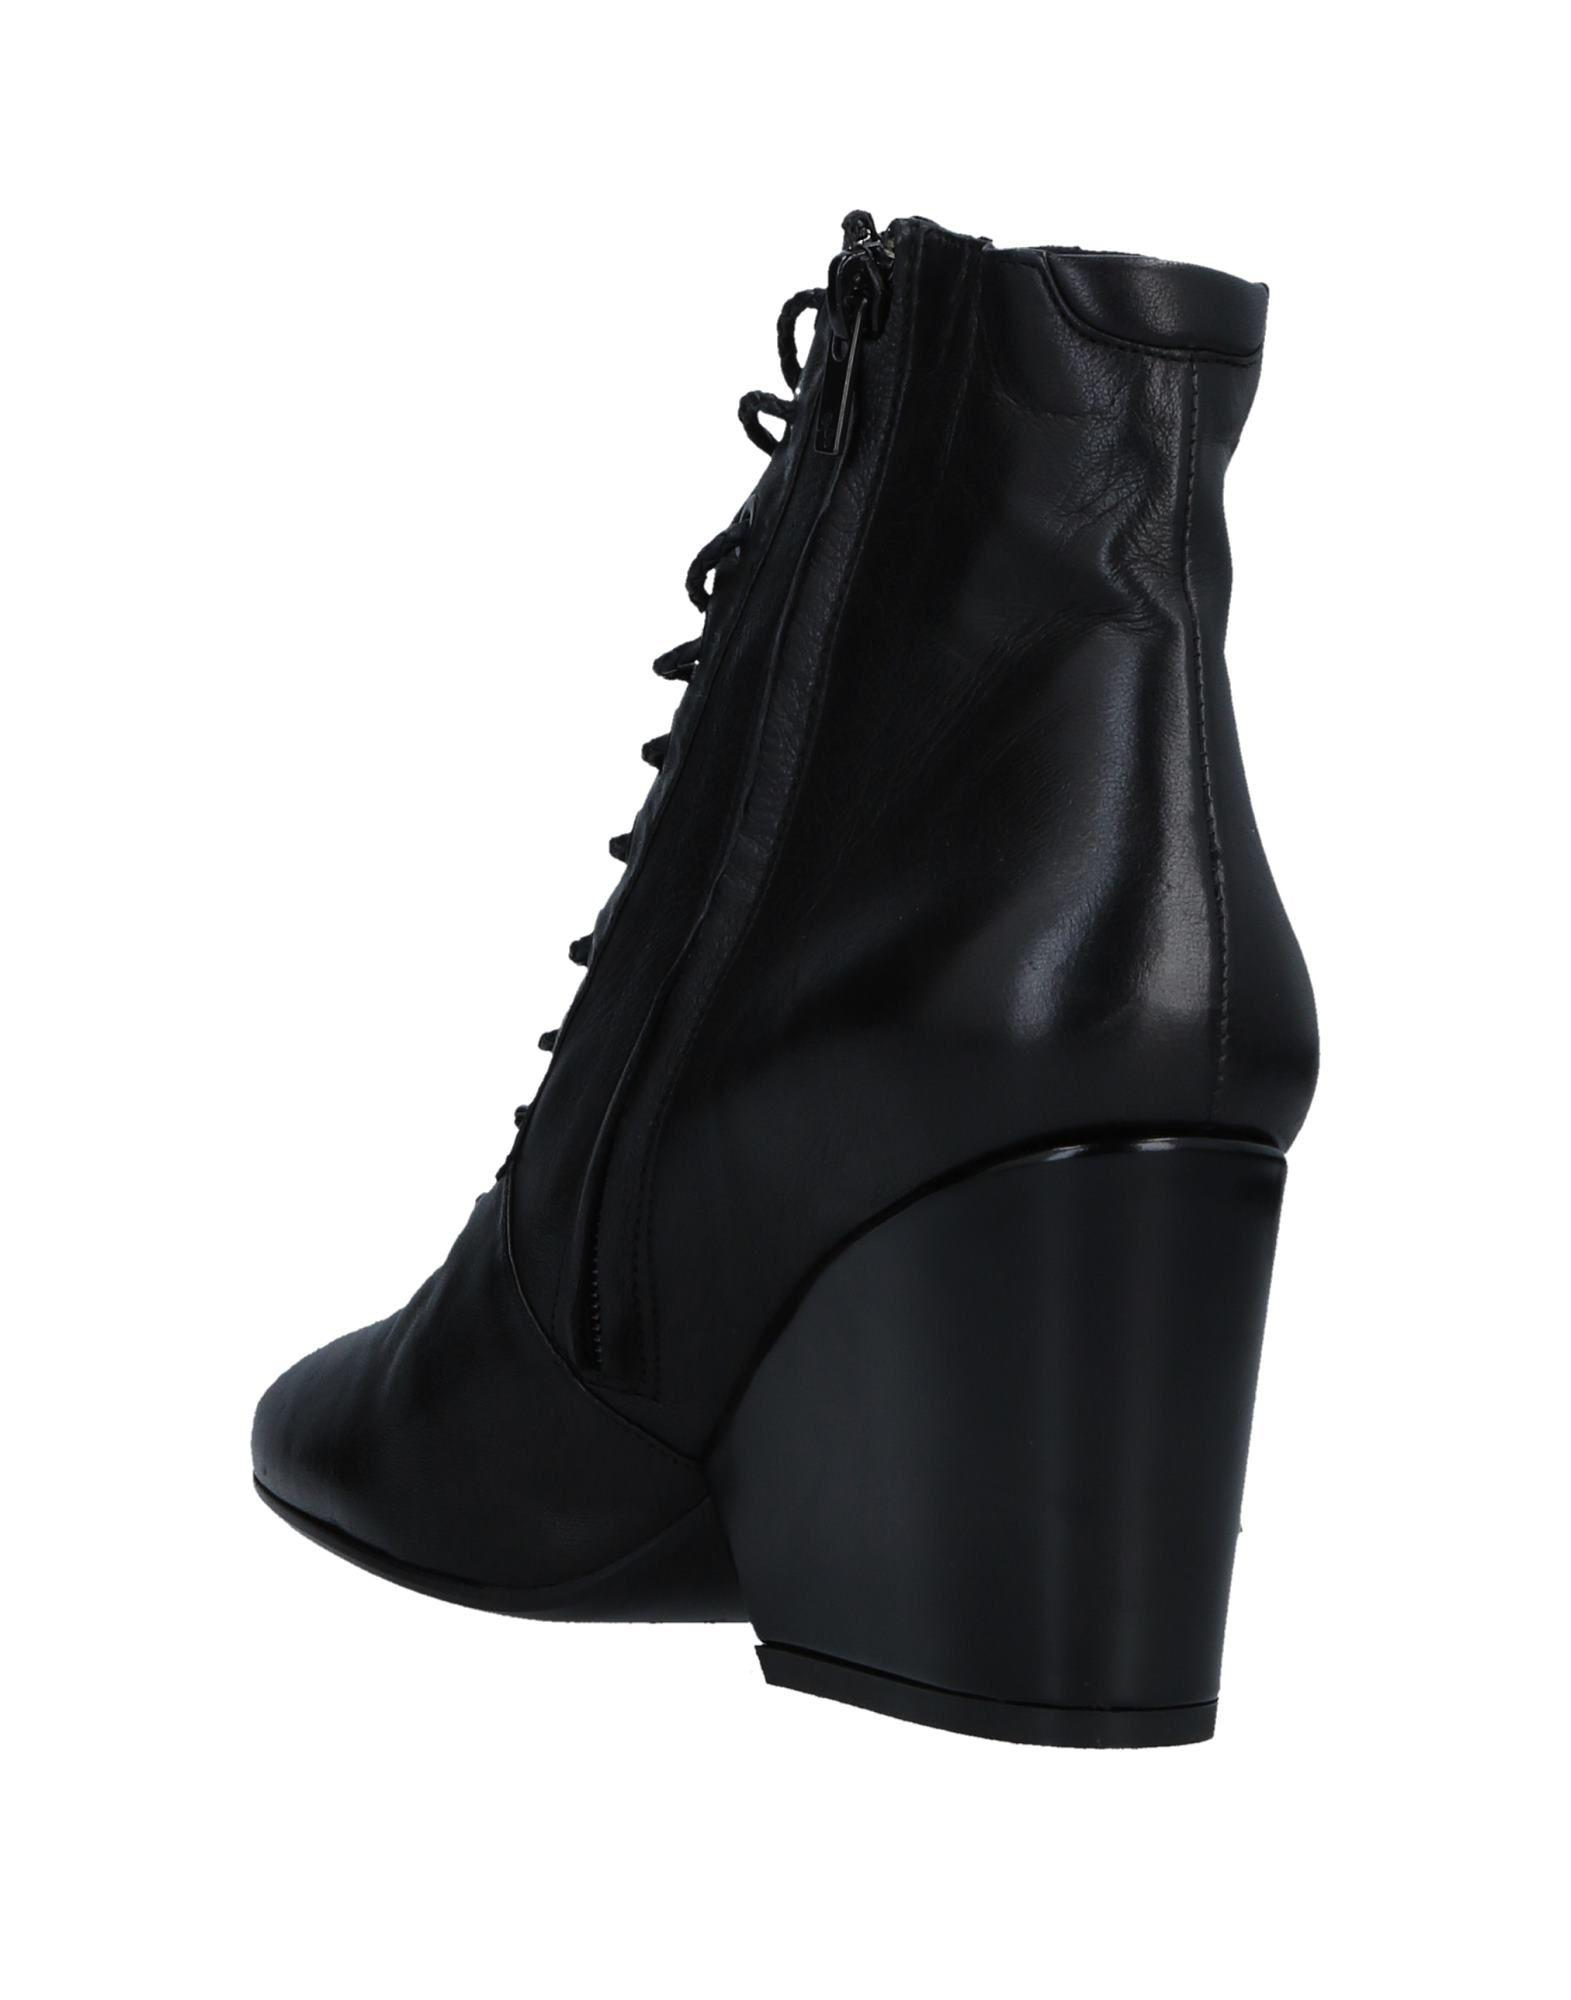 4cf0fa1207e Robert Clergerie Ankle Boots in Black - Lyst